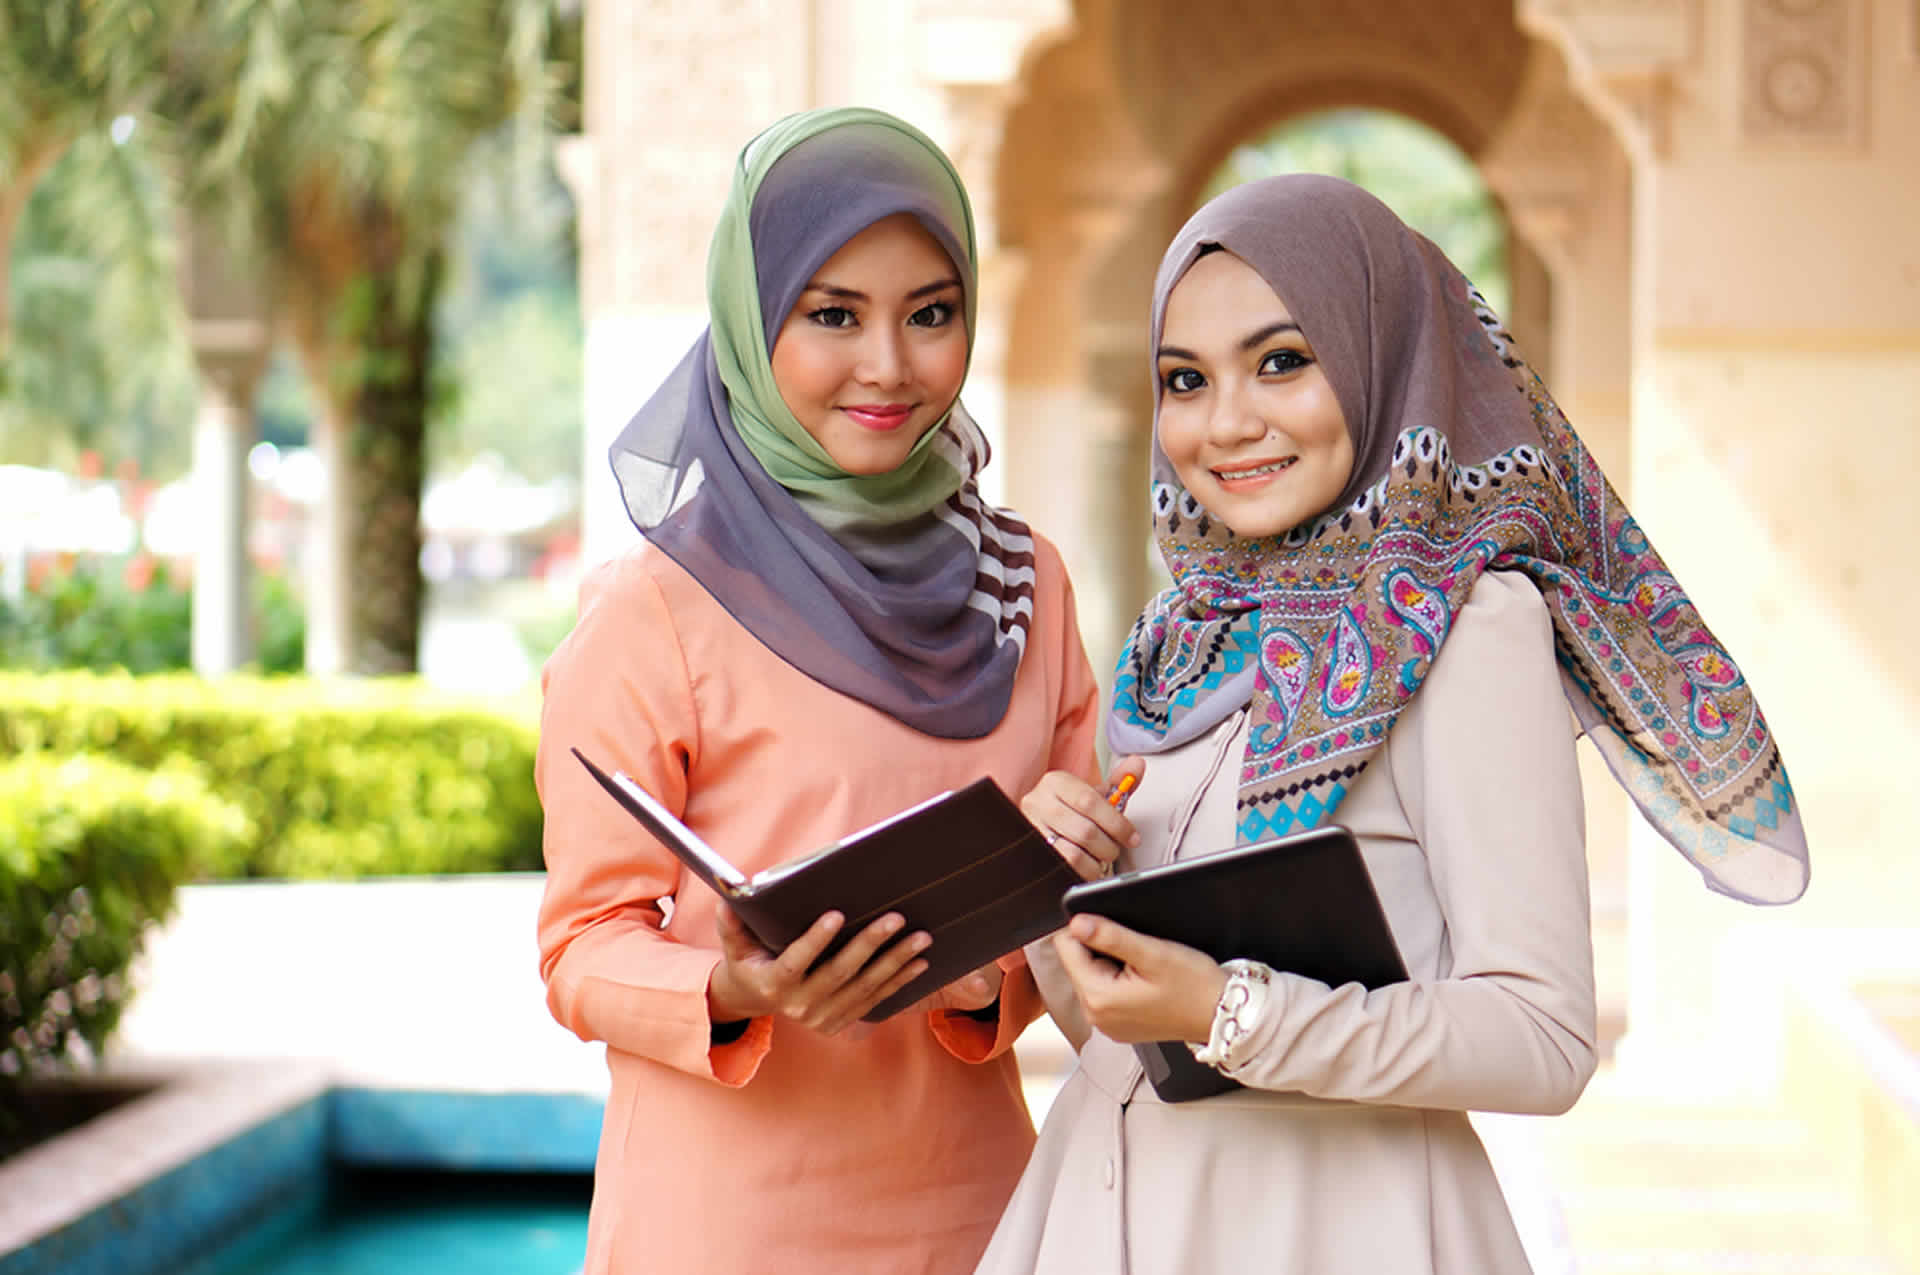 Free single muslim dating sites